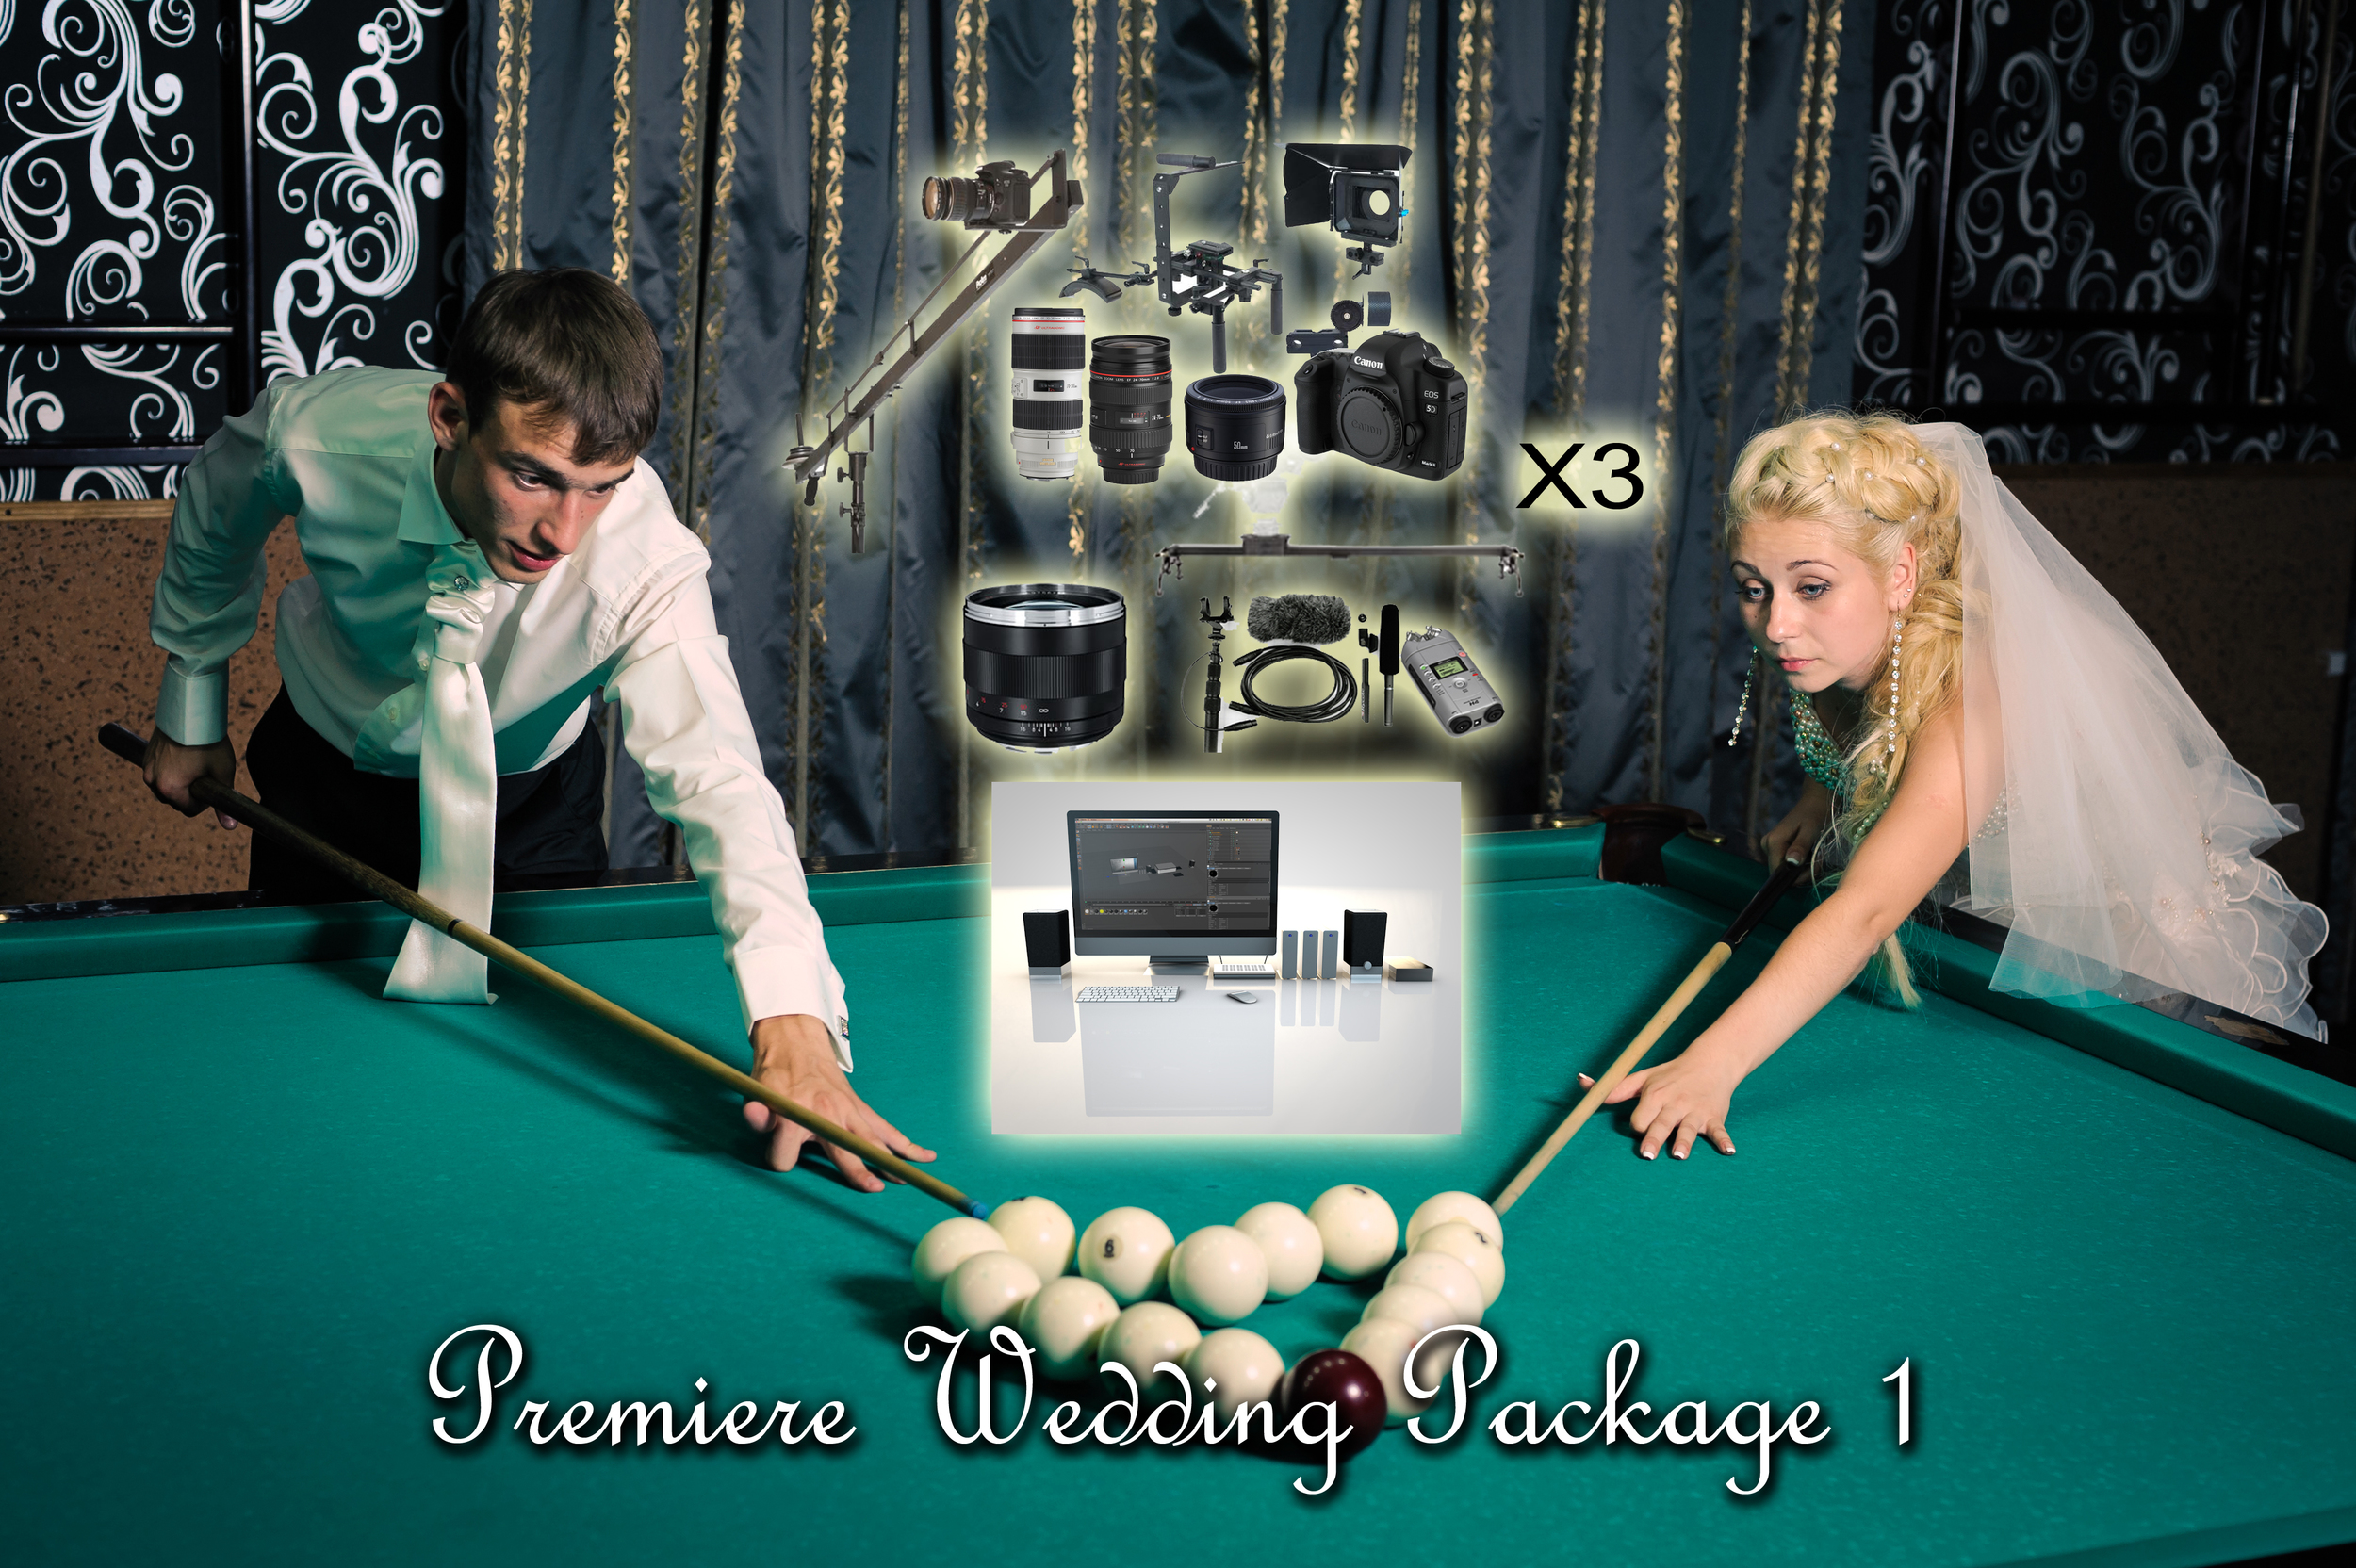 PREMIERE WEDING PACK 1         Basic Package  (With free Canon 60D Camera)    Audio Package and Operator      Assistant:  Zeiss Lens Package    Crane and Slider:    Added Lighting: FREE!     Hard Drive   Misc;    Editing   Price: $8740.00    Discount Price: $7,760.00!    Savings: $980.00!